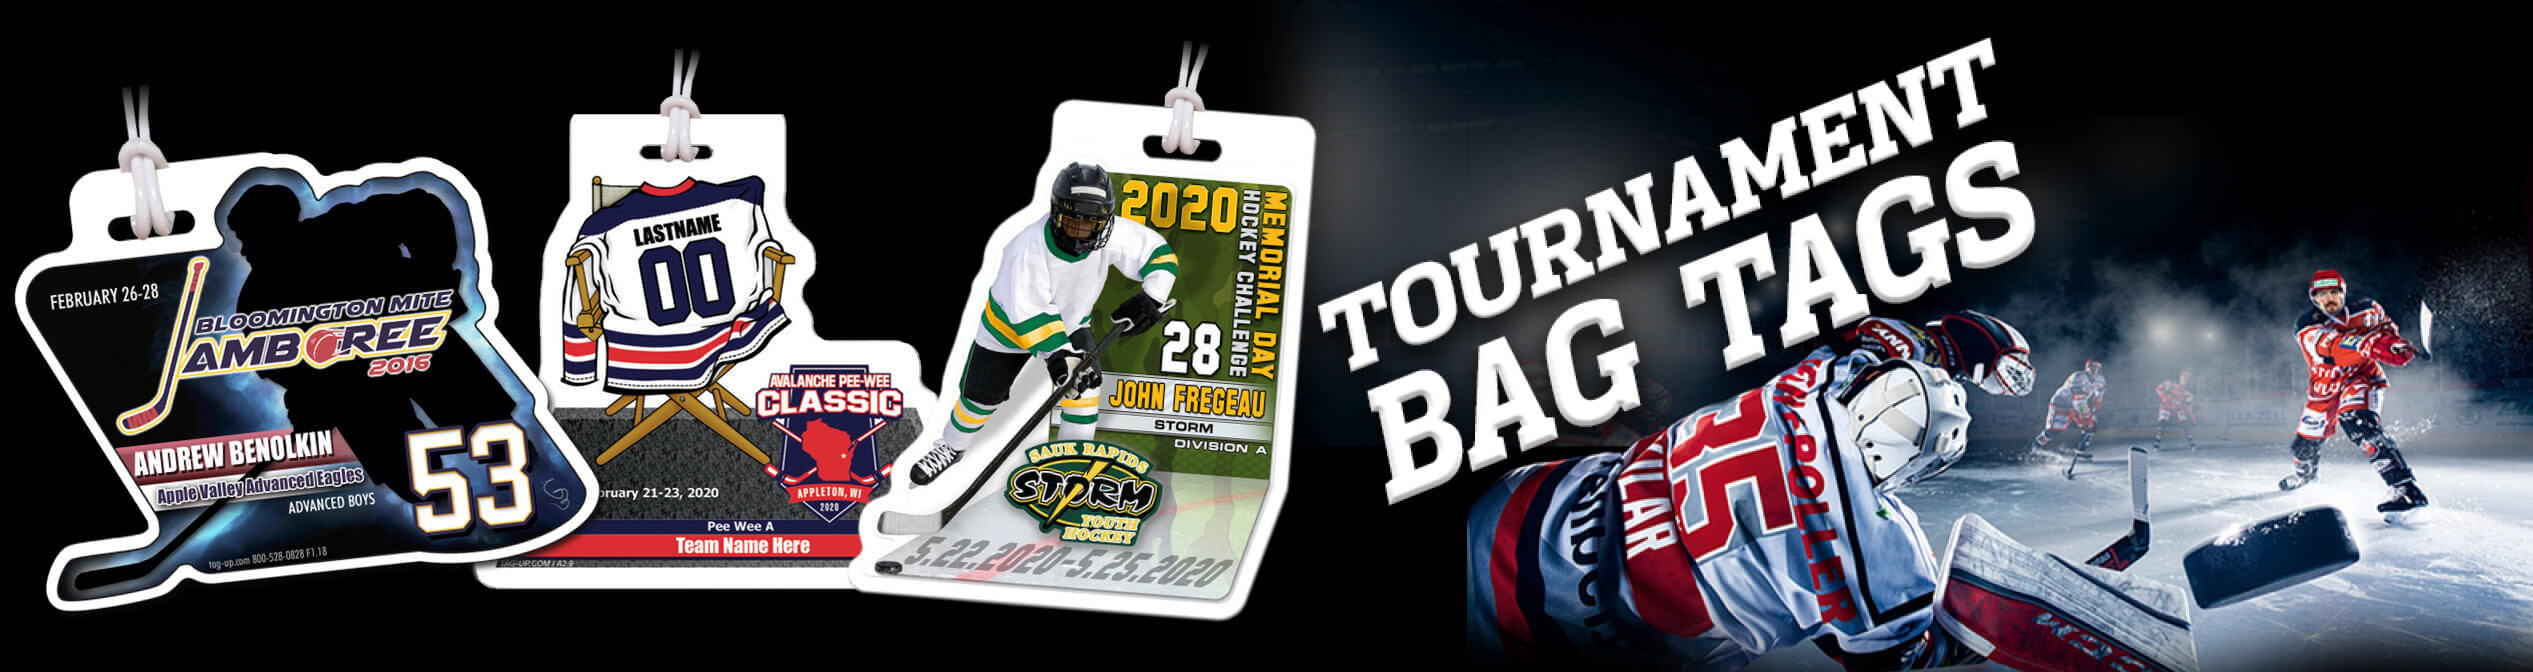 tournament bag tags